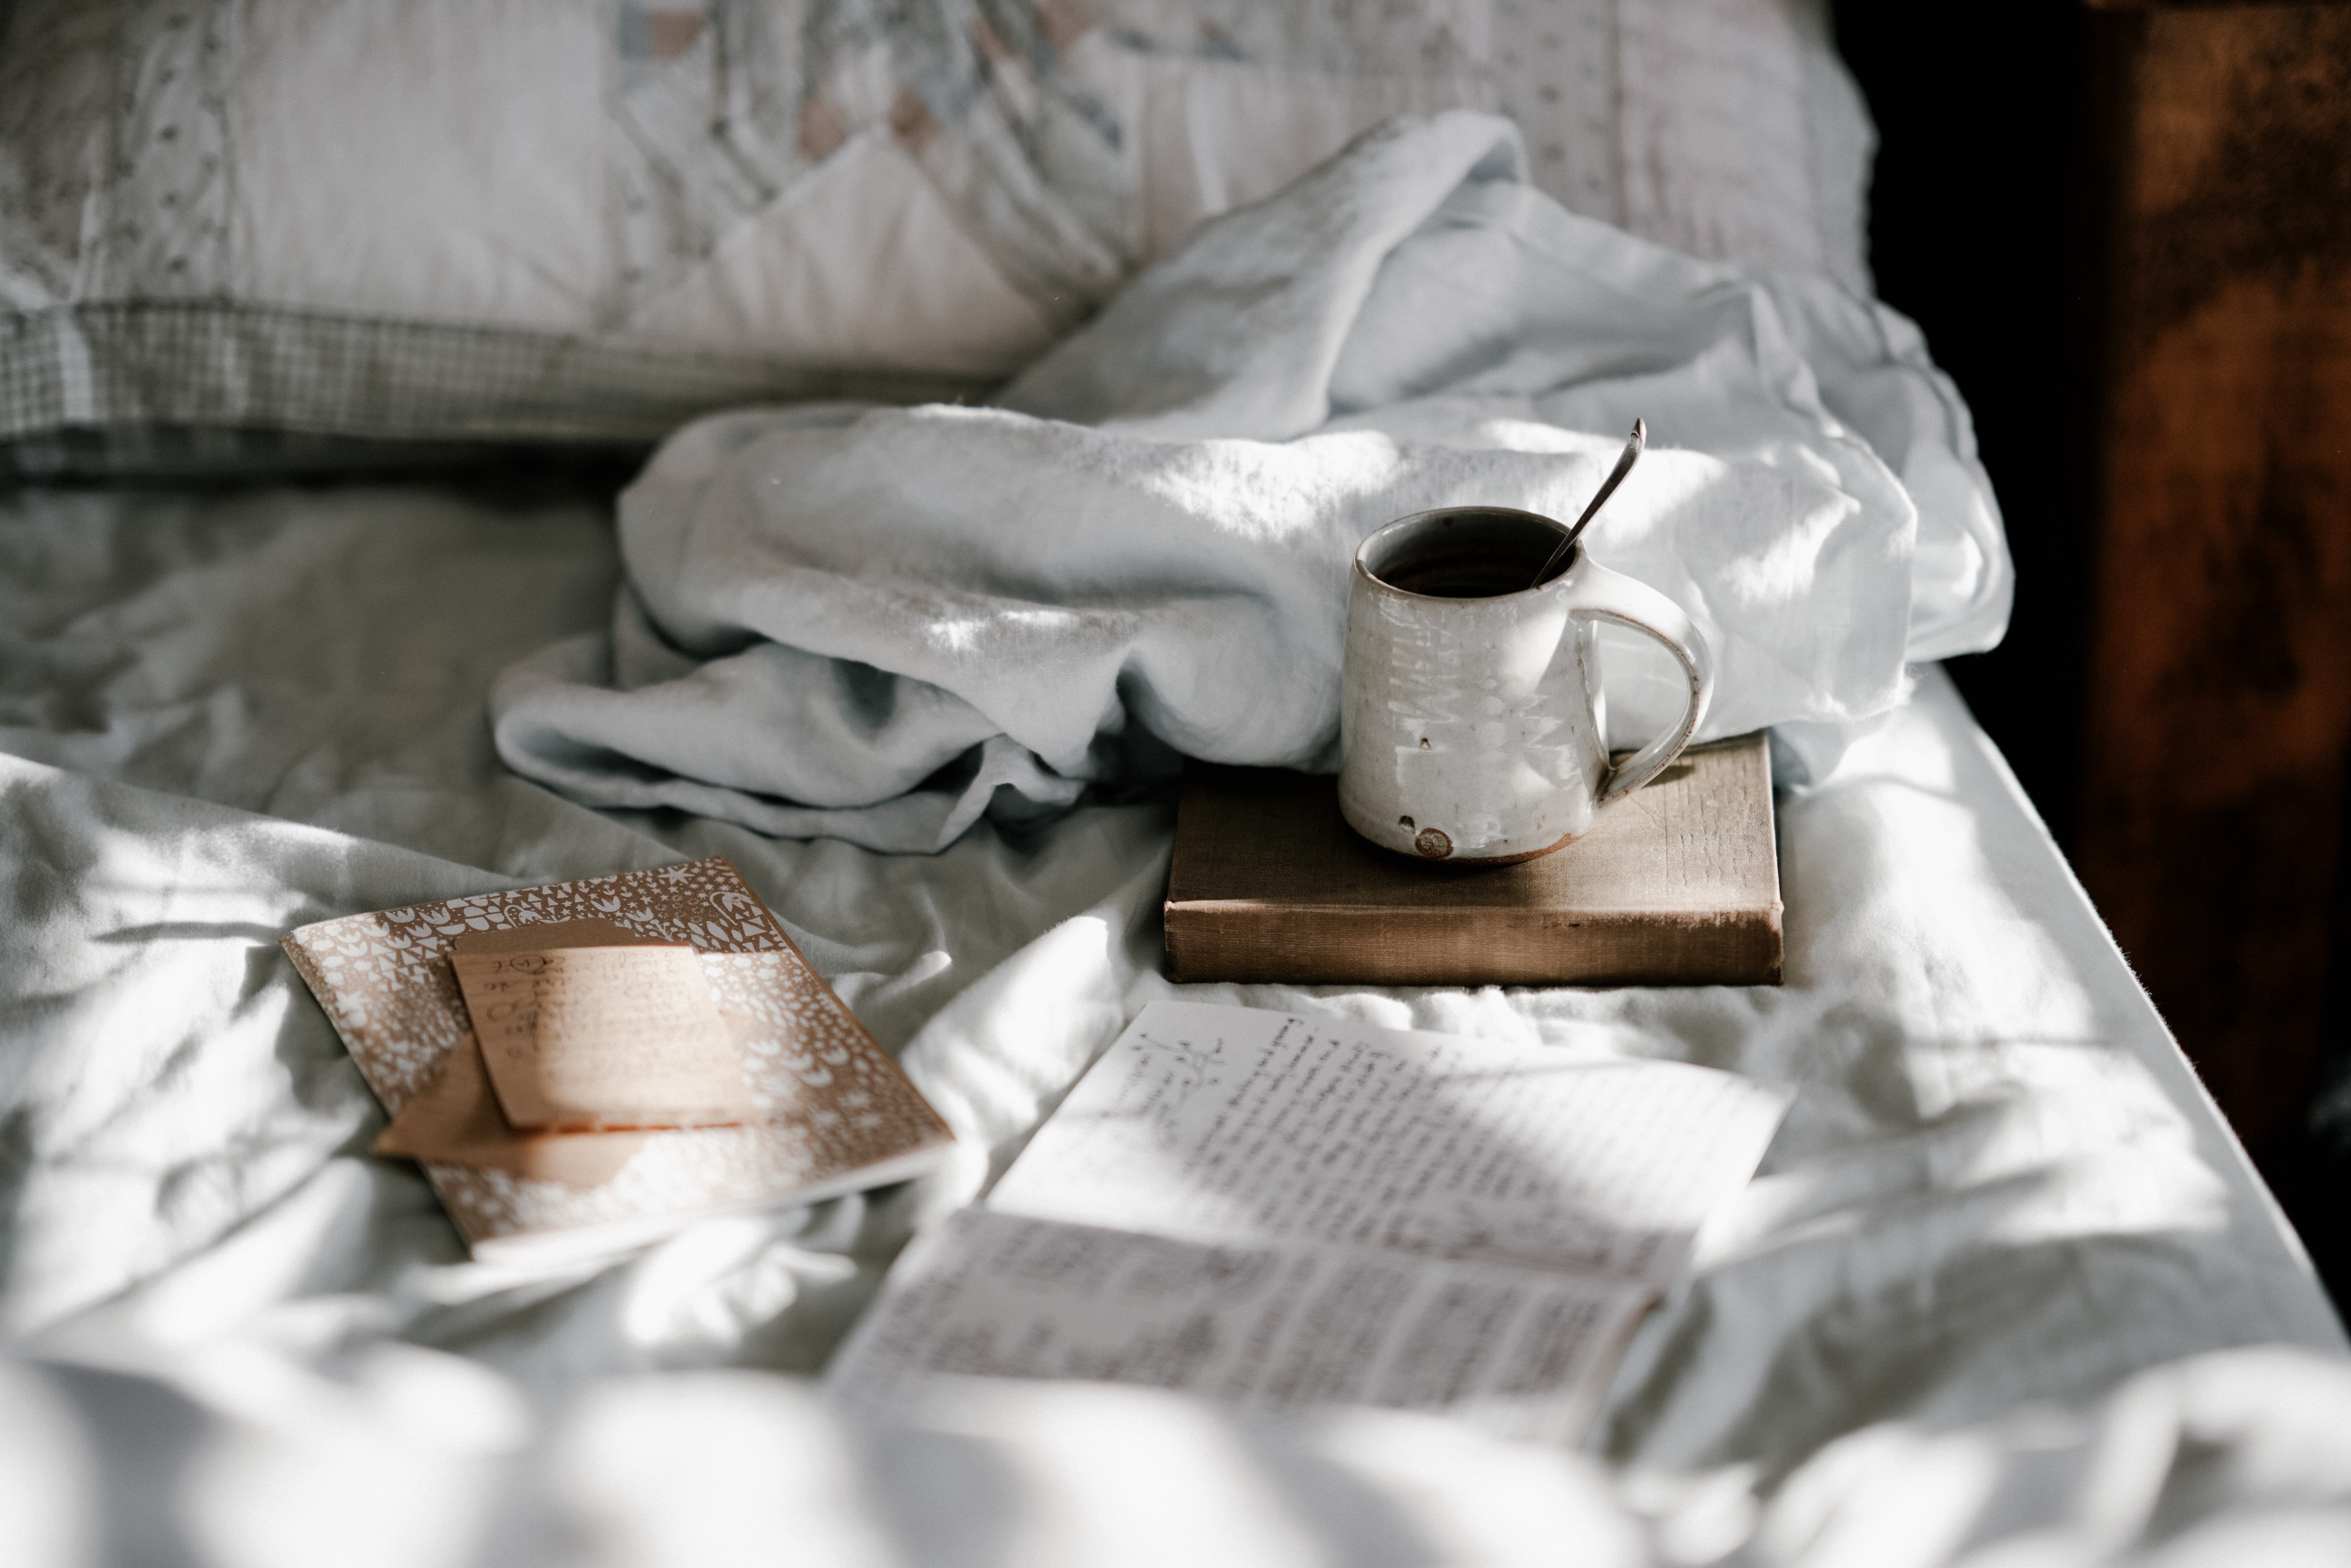 Coffee, journal and writing materials on the bed